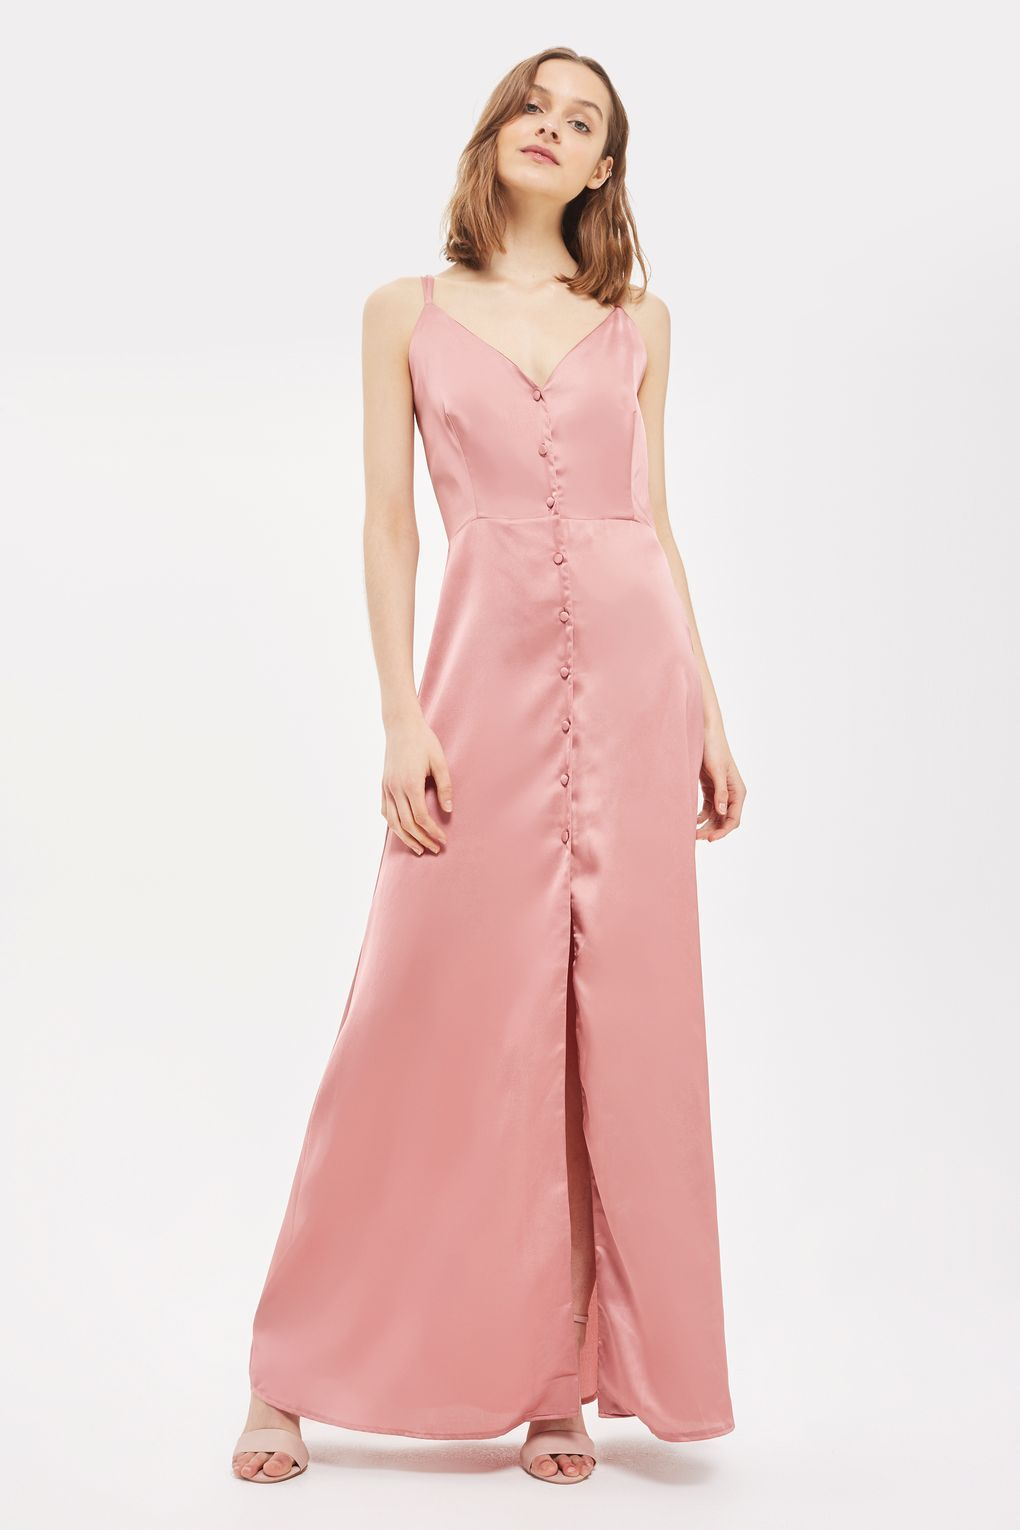 Satin Button Down Maxi Dress by Oh My Love - Dresses - Clothing ...